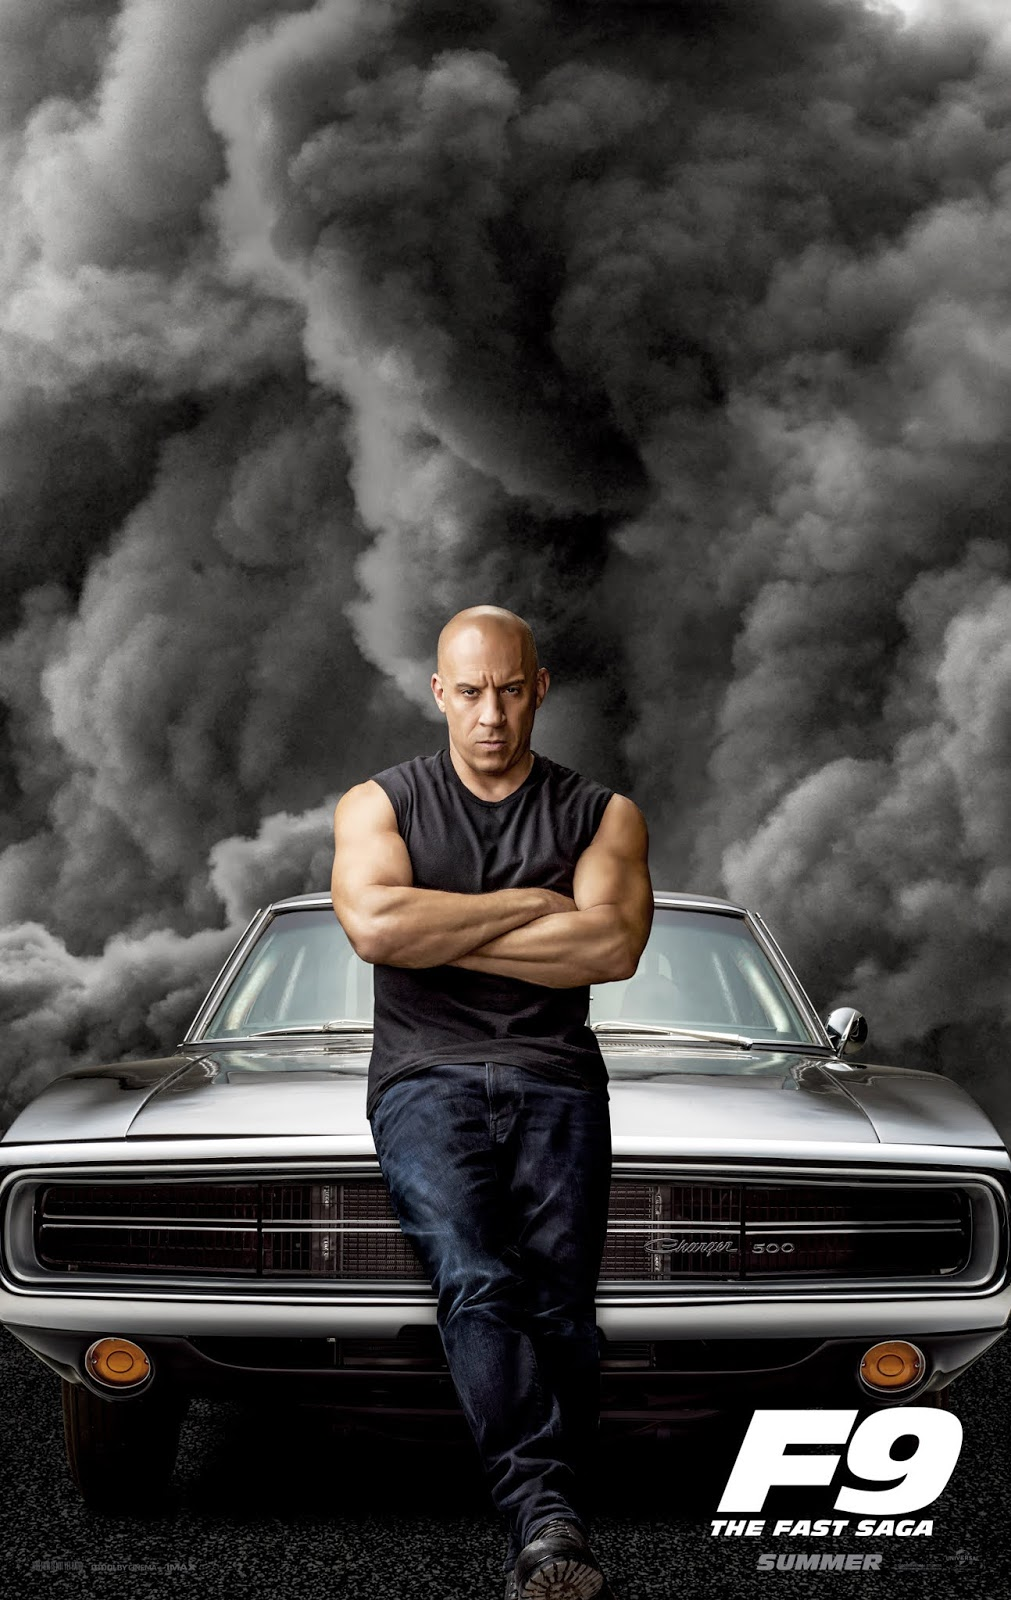 Vin Diesel - Fast and Furious 9